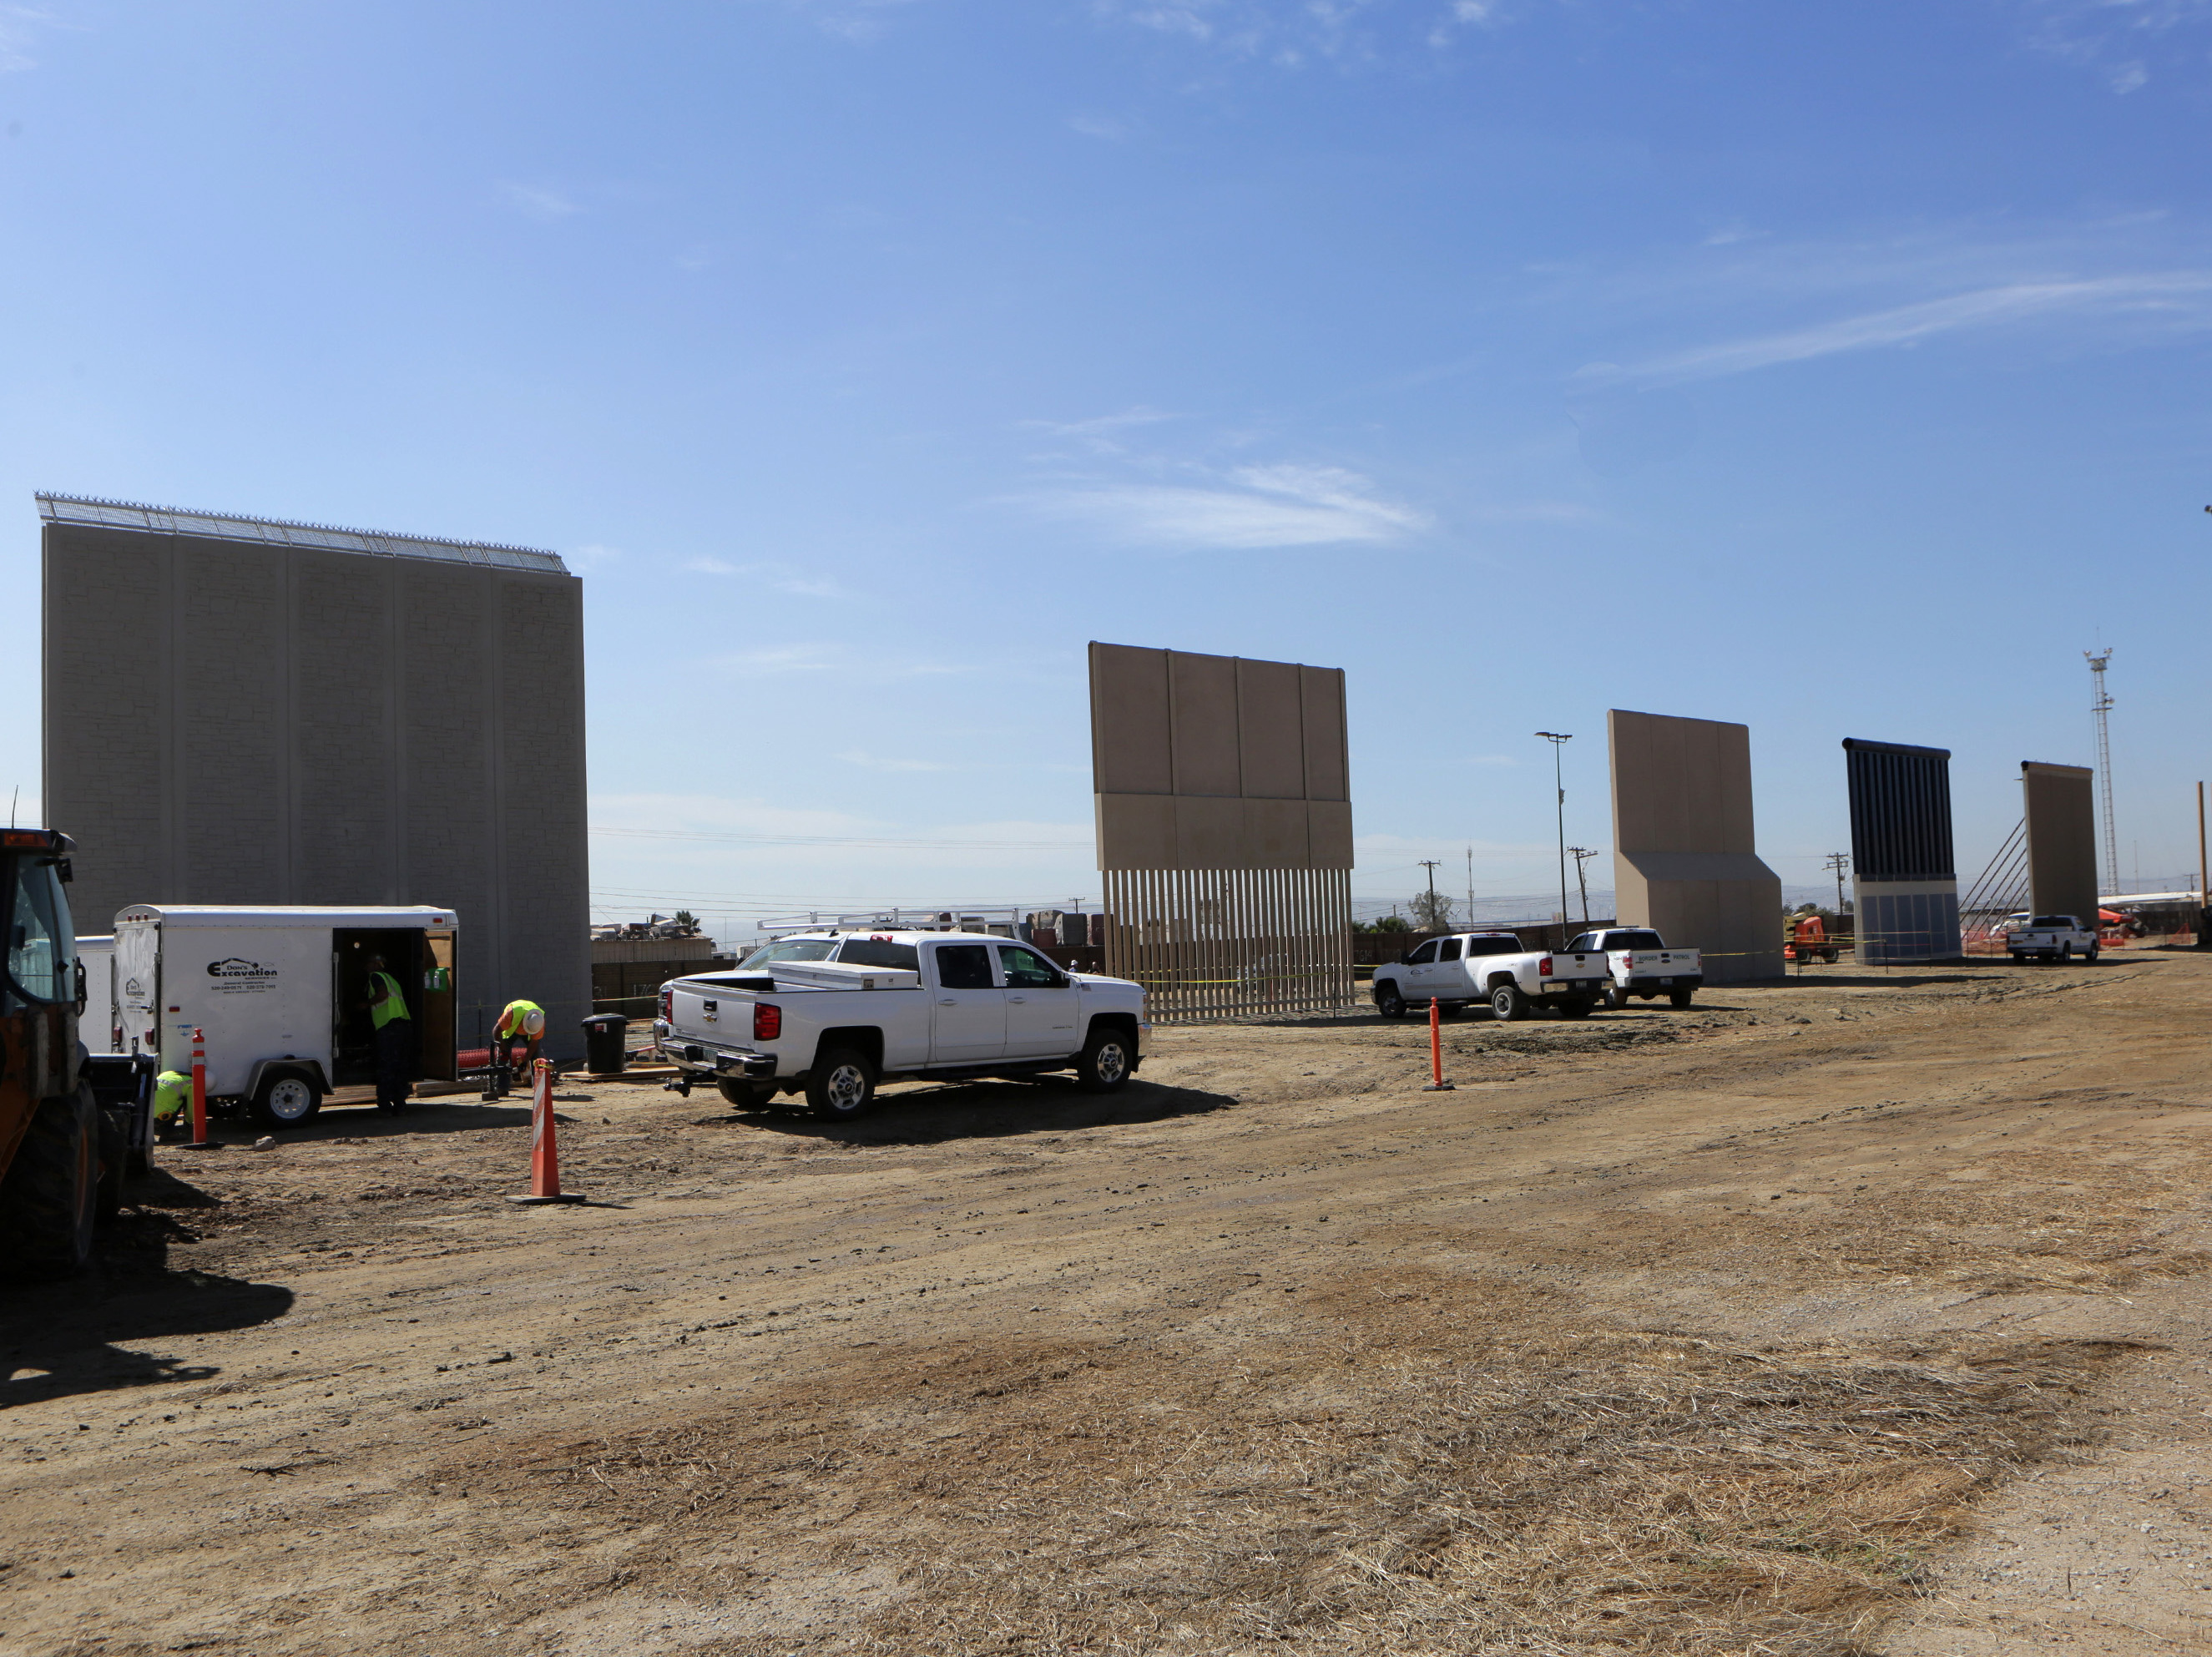 """Competitors who are hoping to gain approval to build the border wall have until the first of next month to complete their work.Crews work at the construction site of prototypes for President Trump's border wall in San Diego County.Aurelia Rodriguez and her daughter Melanie stand in a structure in Tijuana, Mexico, with a view of border wall prototypes under construction.Competitors who are hoping to gain approval to build the border wall have until the end of the month to complete their work.""""We want a better barrier. One that is hard to scale, hard to penetrate and hard to tunnel under,"""" says Roy Villareal, chief of the San Diego Border Patrol sector.Border wall prototypes are being erected on Otay Mesa in San Diego County, just north of the U.S.-Mexico border.Competitors who are hoping to gain approval to build the border wall have until the first of next month to complete their work.Crews work at the construction site of prototypes for President Trump's border wall in San Diego County.Aurelia Rodriguez and her daughter Melanie stand in a structure in Tijuana, Mexico, with a view of border wall prototypes under construction.Competitors who are hoping to gain approval to build the border wall have until the end of the month to complete their work.""""We want a better barrier. One that is hard to scale, hard to penetrate and hard to tunnel under,"""" says Roy Villareal, chief of the San Diego Border Patrol sector.Border wall prototypes are being erected on Otay Mesa in San Diego County, just north of the U.S.-Mexico border.Competitors who are hoping to gain approval to build the border wall have until the first of next month to complete their work.Crews work at the construction site of prototypes for President Trump's border wall in San Diego County.Aurelia Rodriguez and her daughter Melanie stand in a structure in Tijuana, Mexico, with a view of border wall prototypes under construction.Competitors who are hoping to gain approval to build the border wall have until the en"""